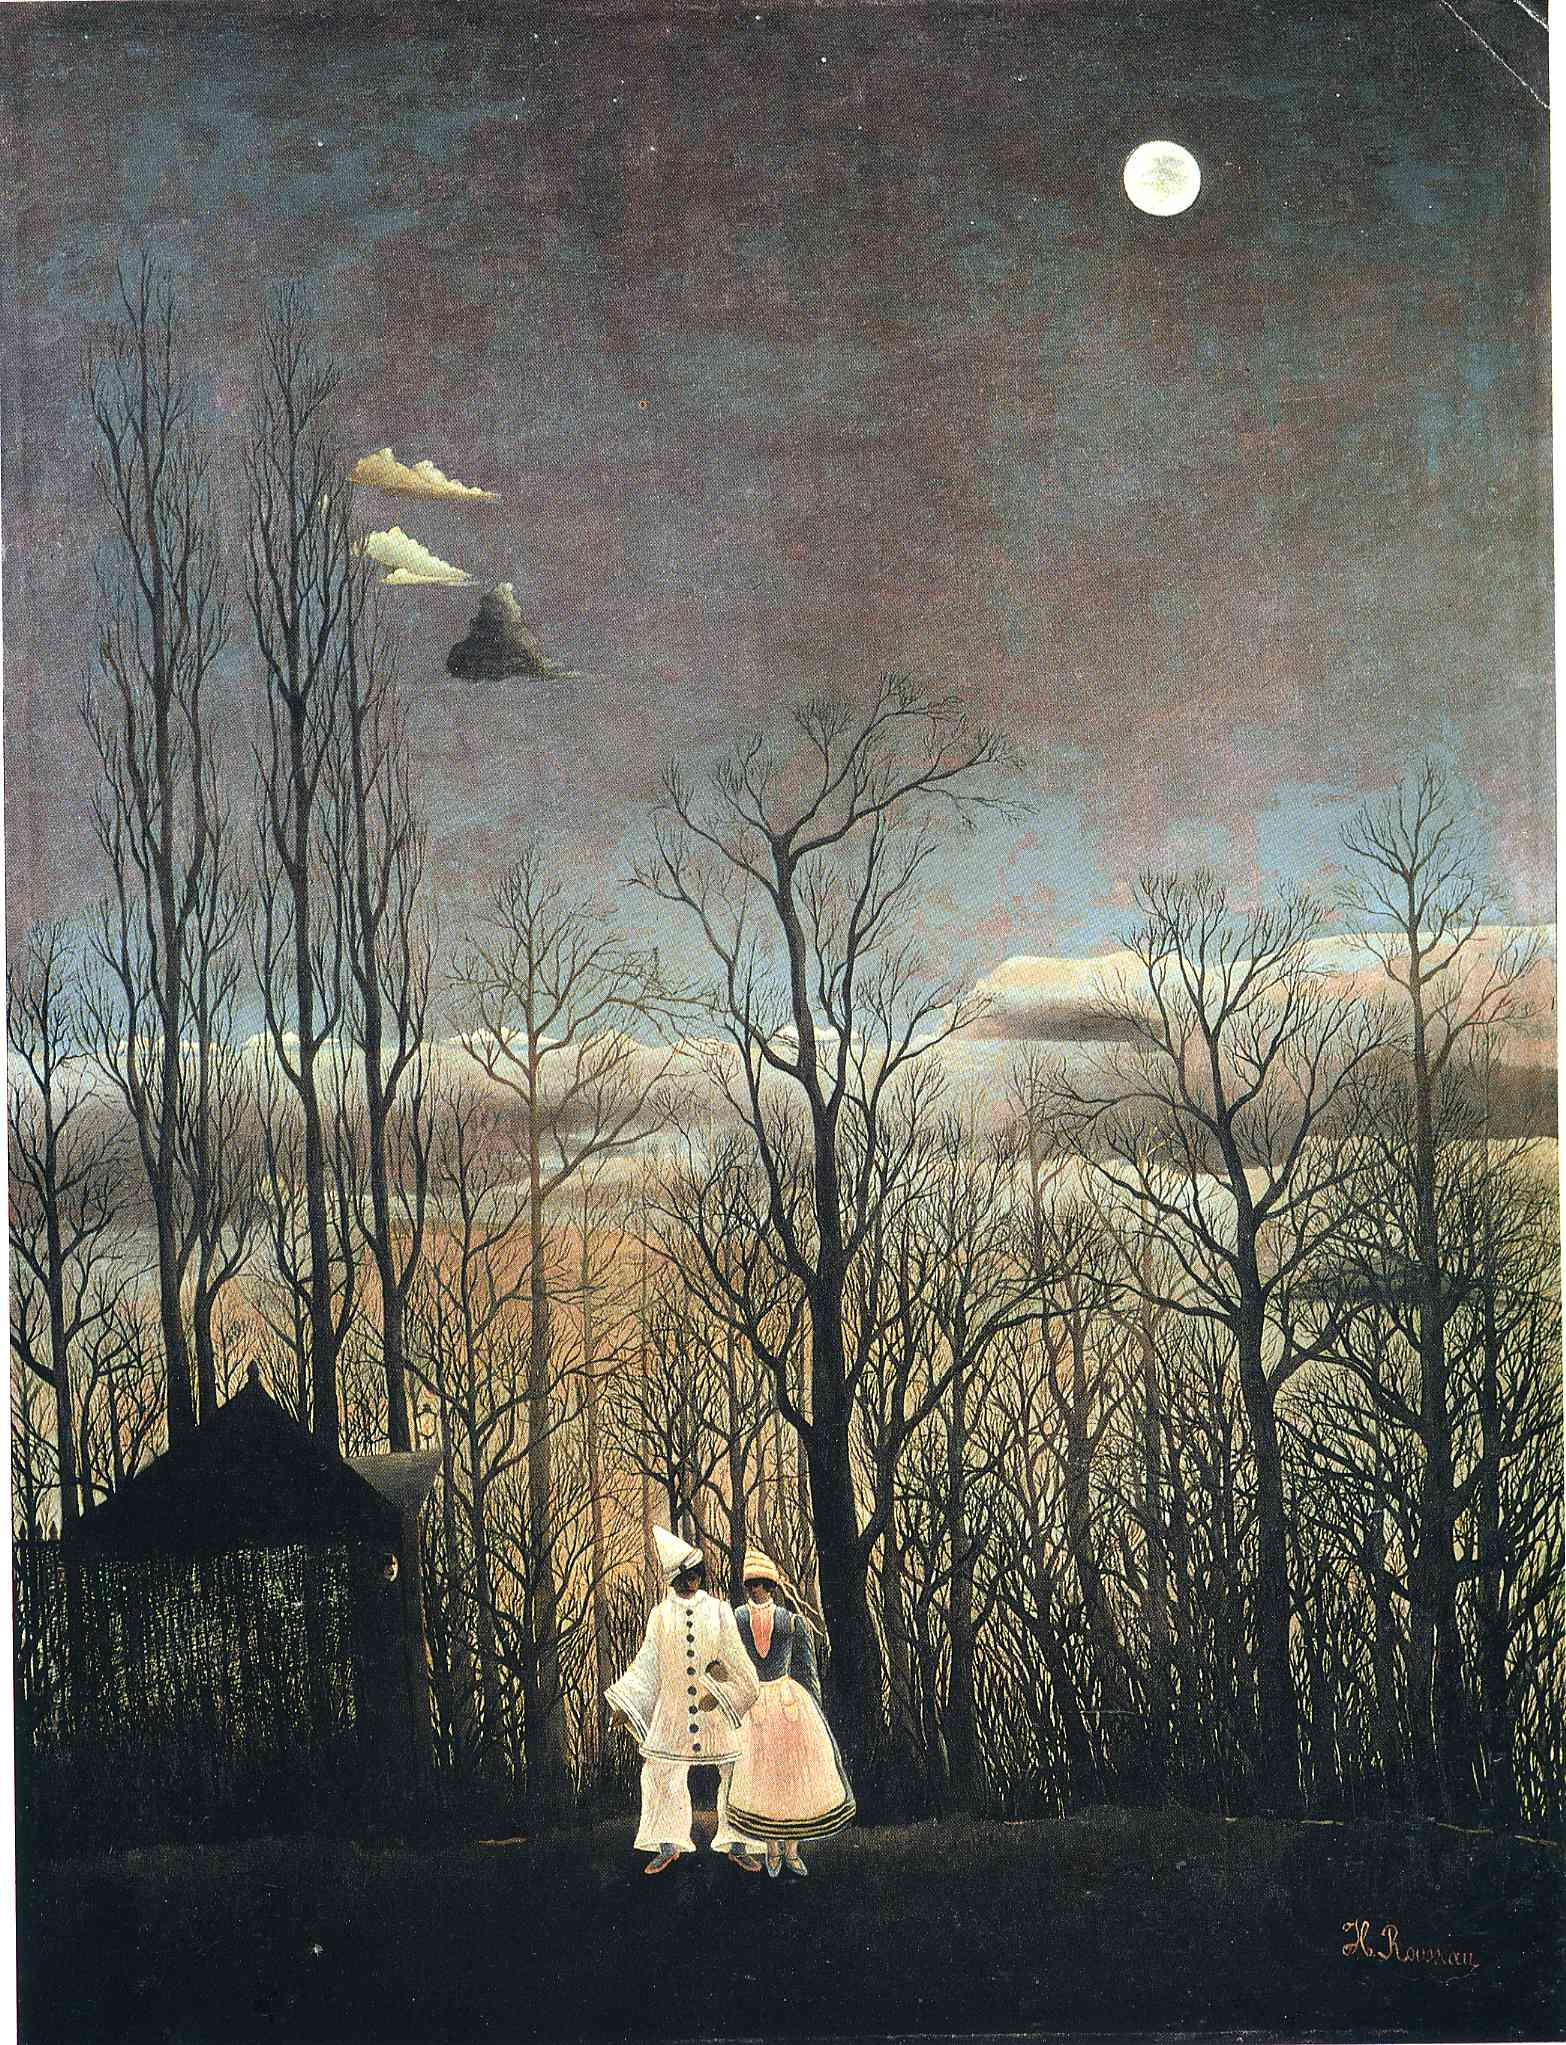 https://uploads6.wikiart.org/images/henri-rousseau/carnival-evening-1886.jpg